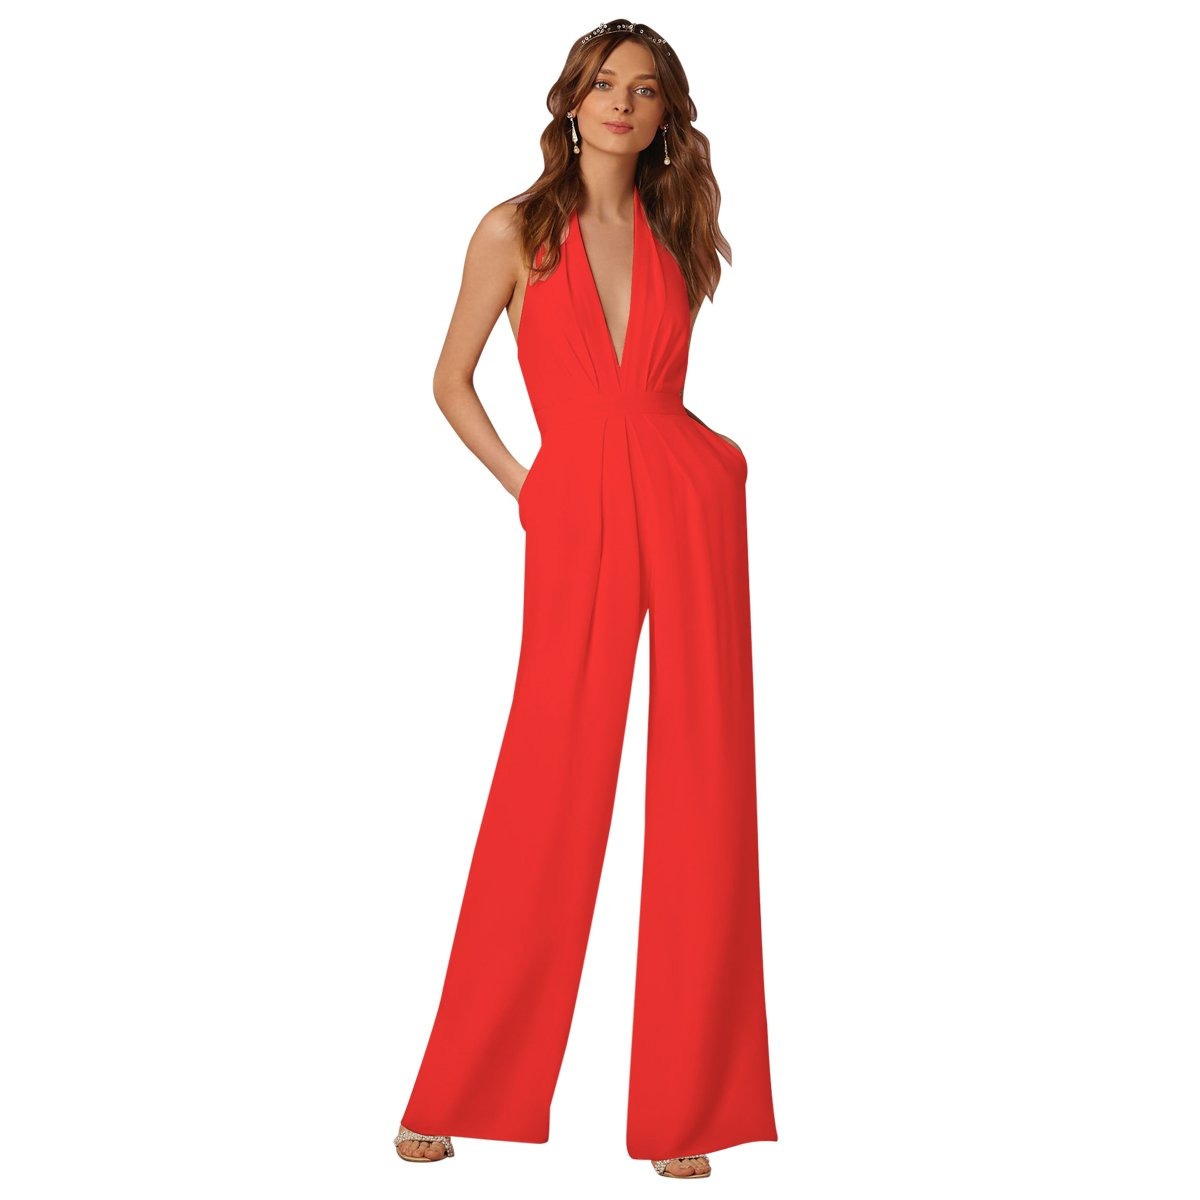 e1b5ce06f590 Amazon.com  IBTOM CASTLE Women s Sexy High Waisted Jumpsuits V-NeckHalter  Wide Leg Long Pants Wedding Rompers Overalls Pockets  Clothing